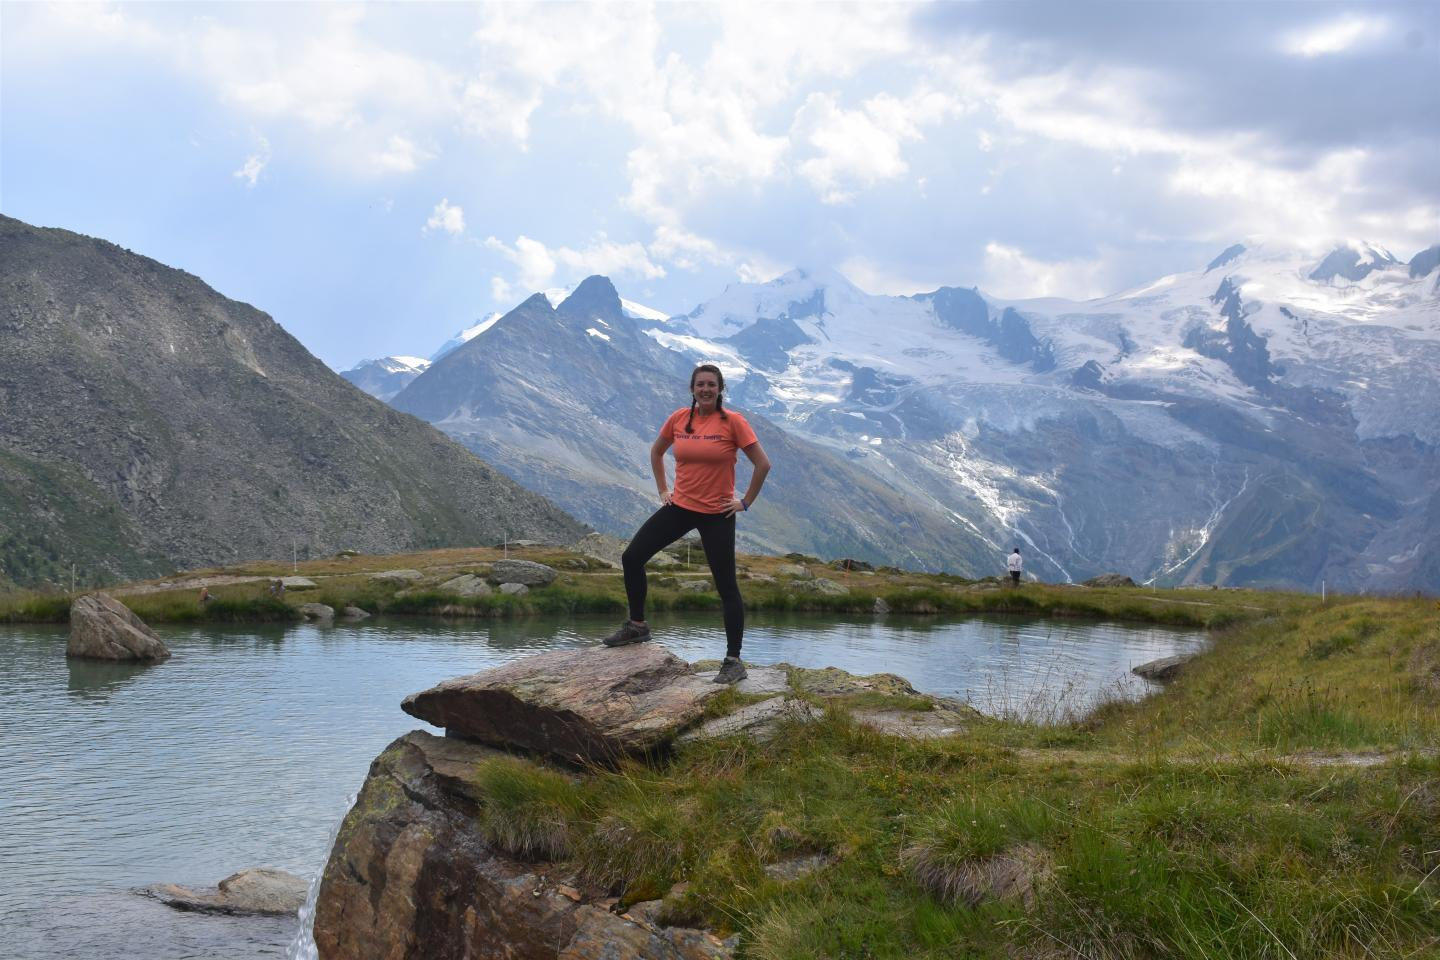 Teen traveler at Alpine lake in Swiss Alps during summer youth adventure travel program